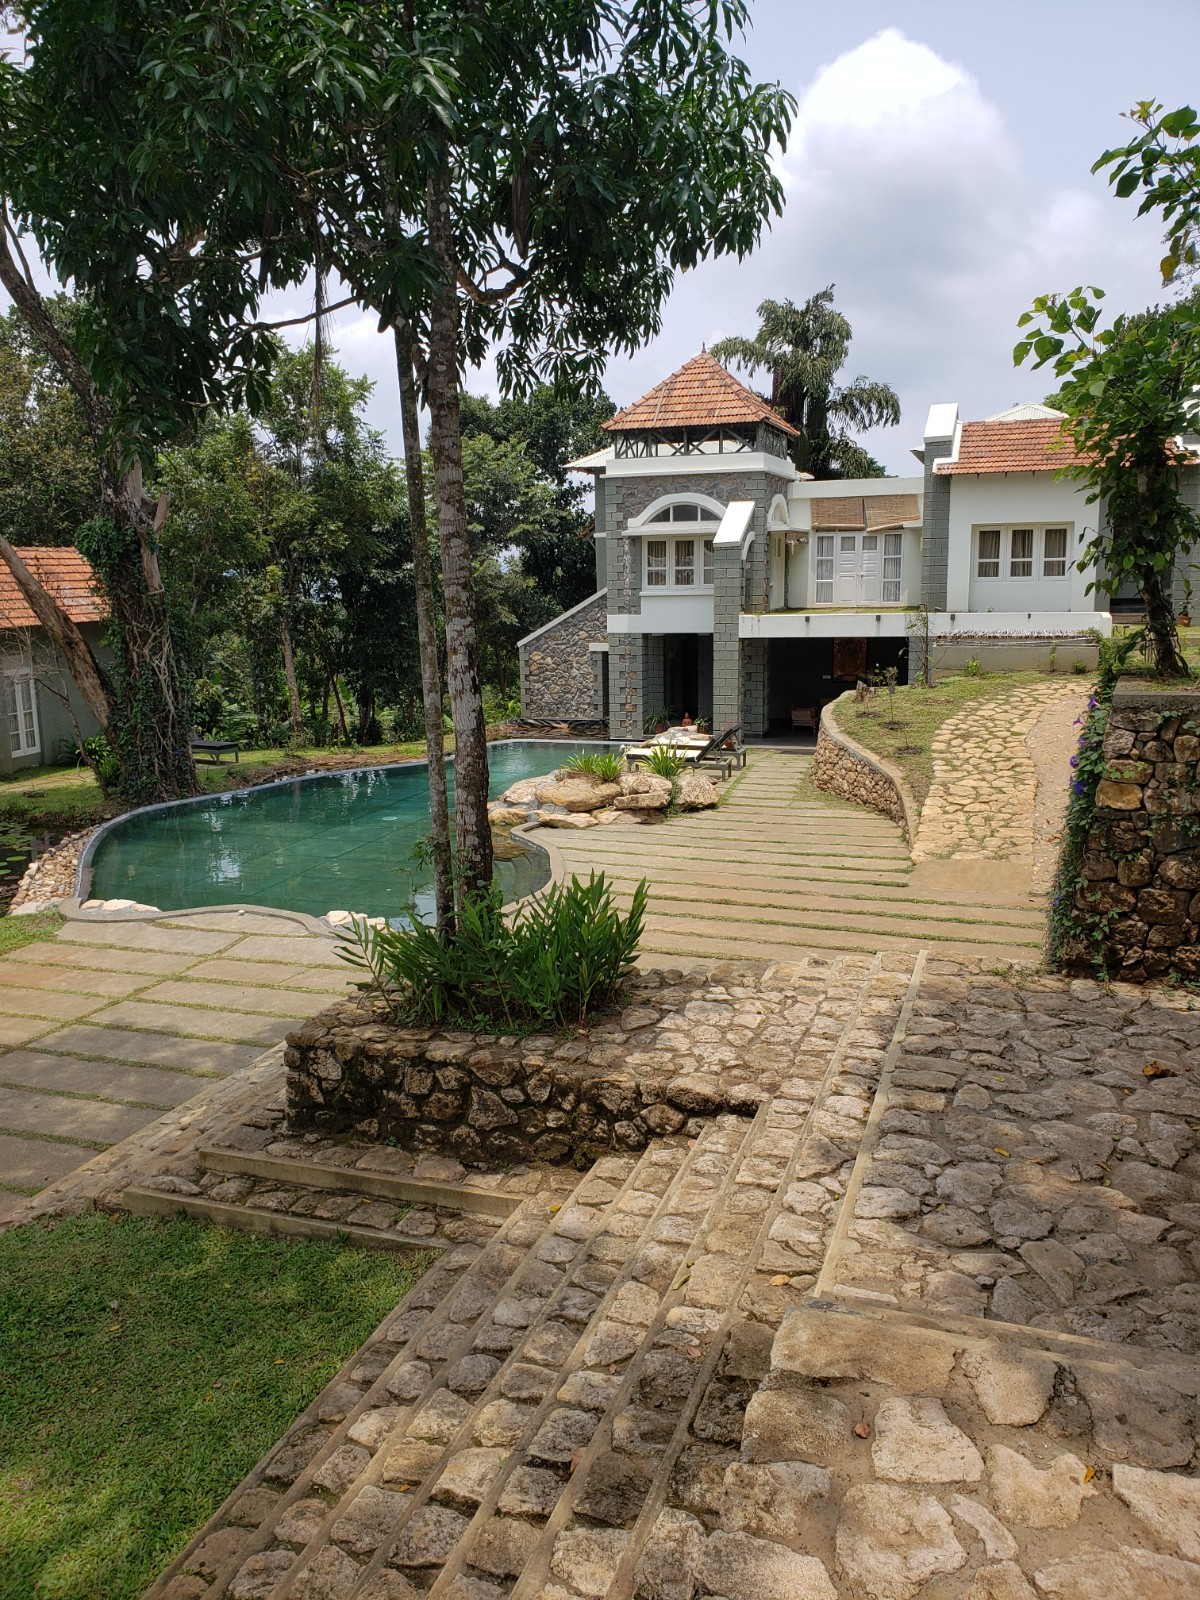 Sugati Resort. A very quiet, romantic resort. Take in mother nature and enjoy the quiet. Perfect for a yoga retreat or  to relax and really tap into your meditative side.